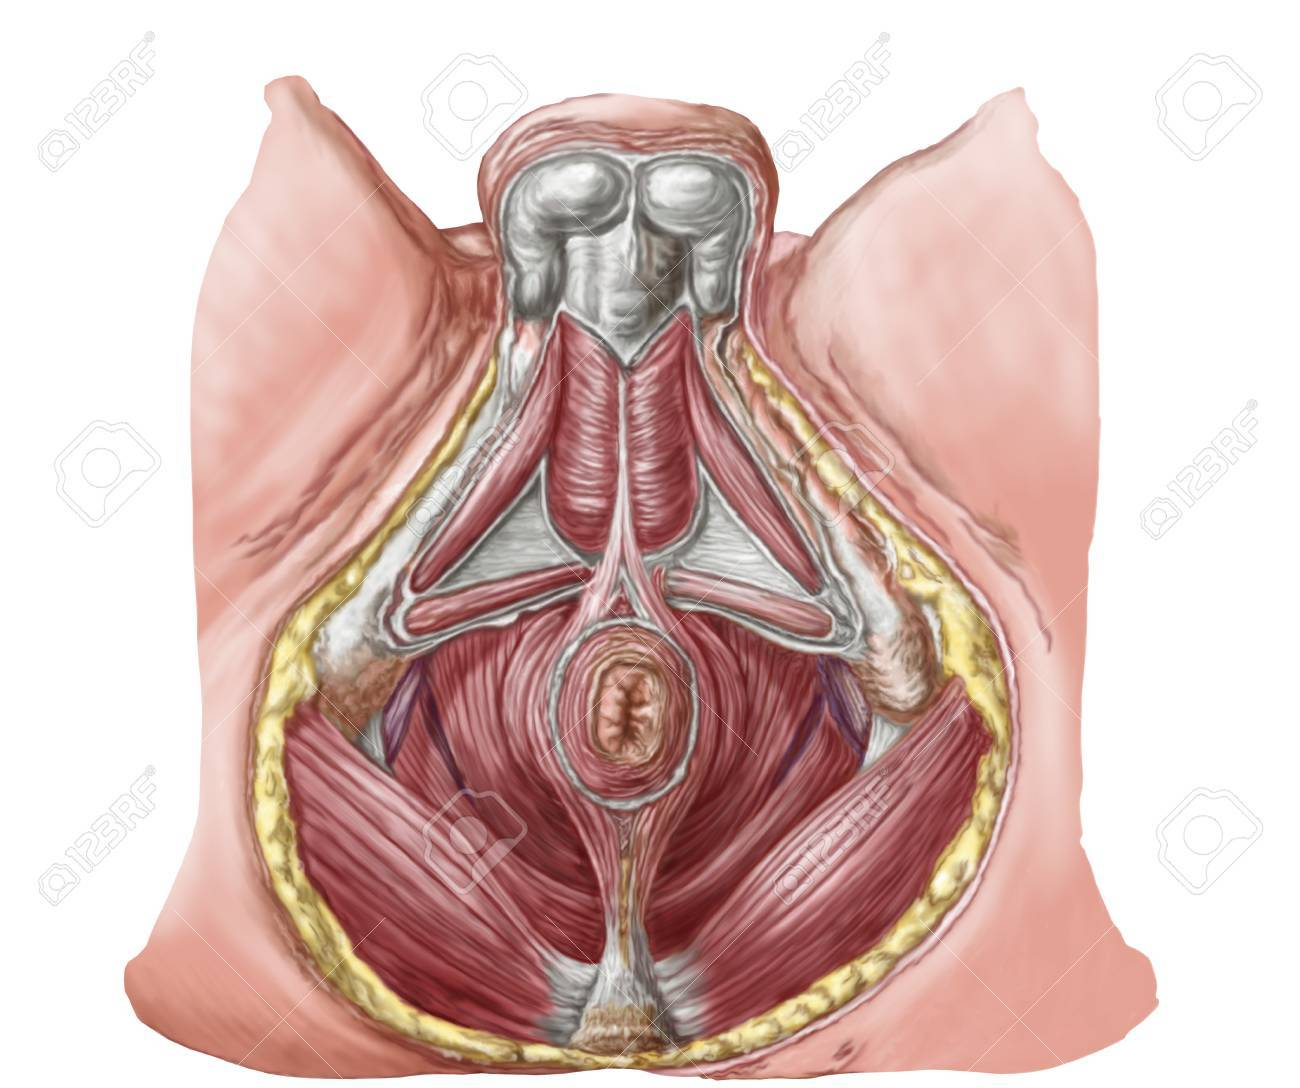 Pelvic Floor Of Human Male. Stock Photo, Picture And Royalty Free ...